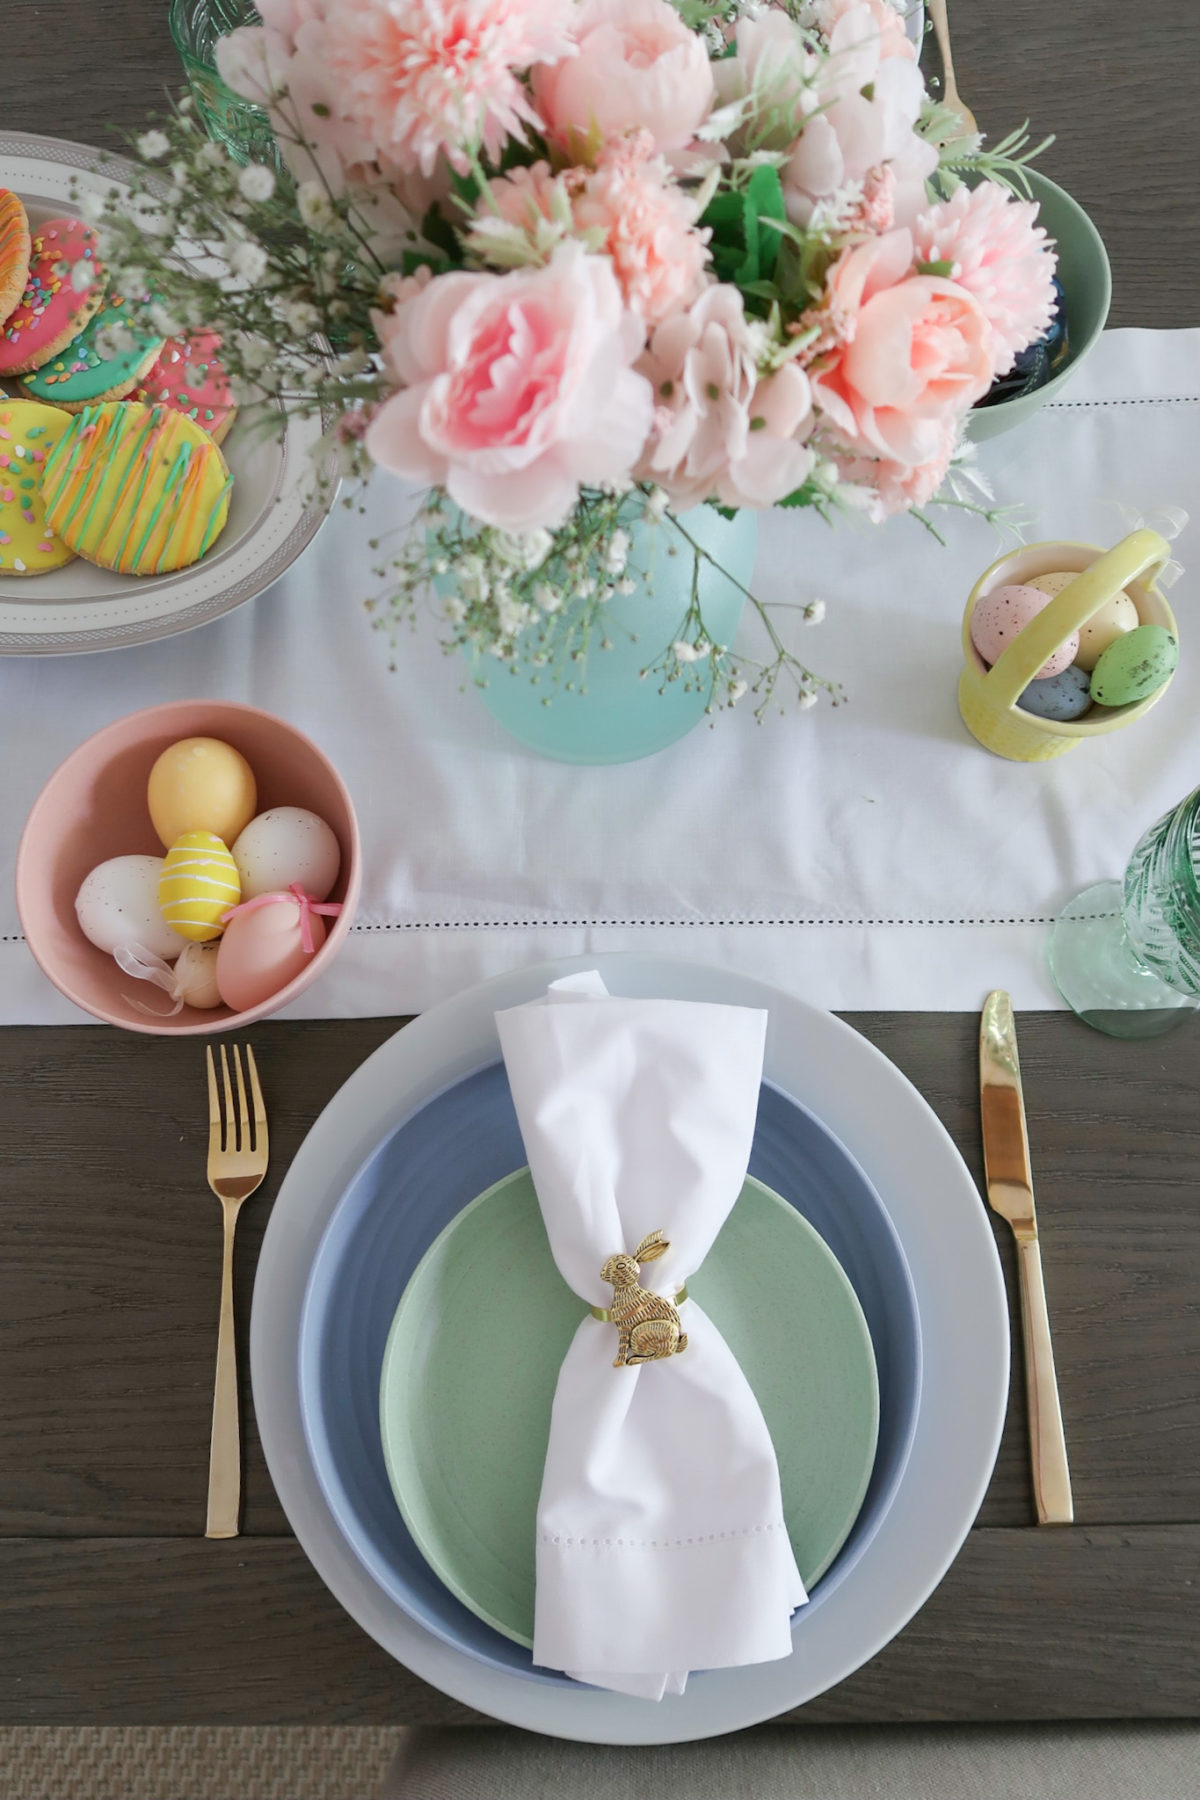 Spring Decor, Flowers, Table Runner, Pastel Plates, Bunny Napkin rings, Gold Flatware